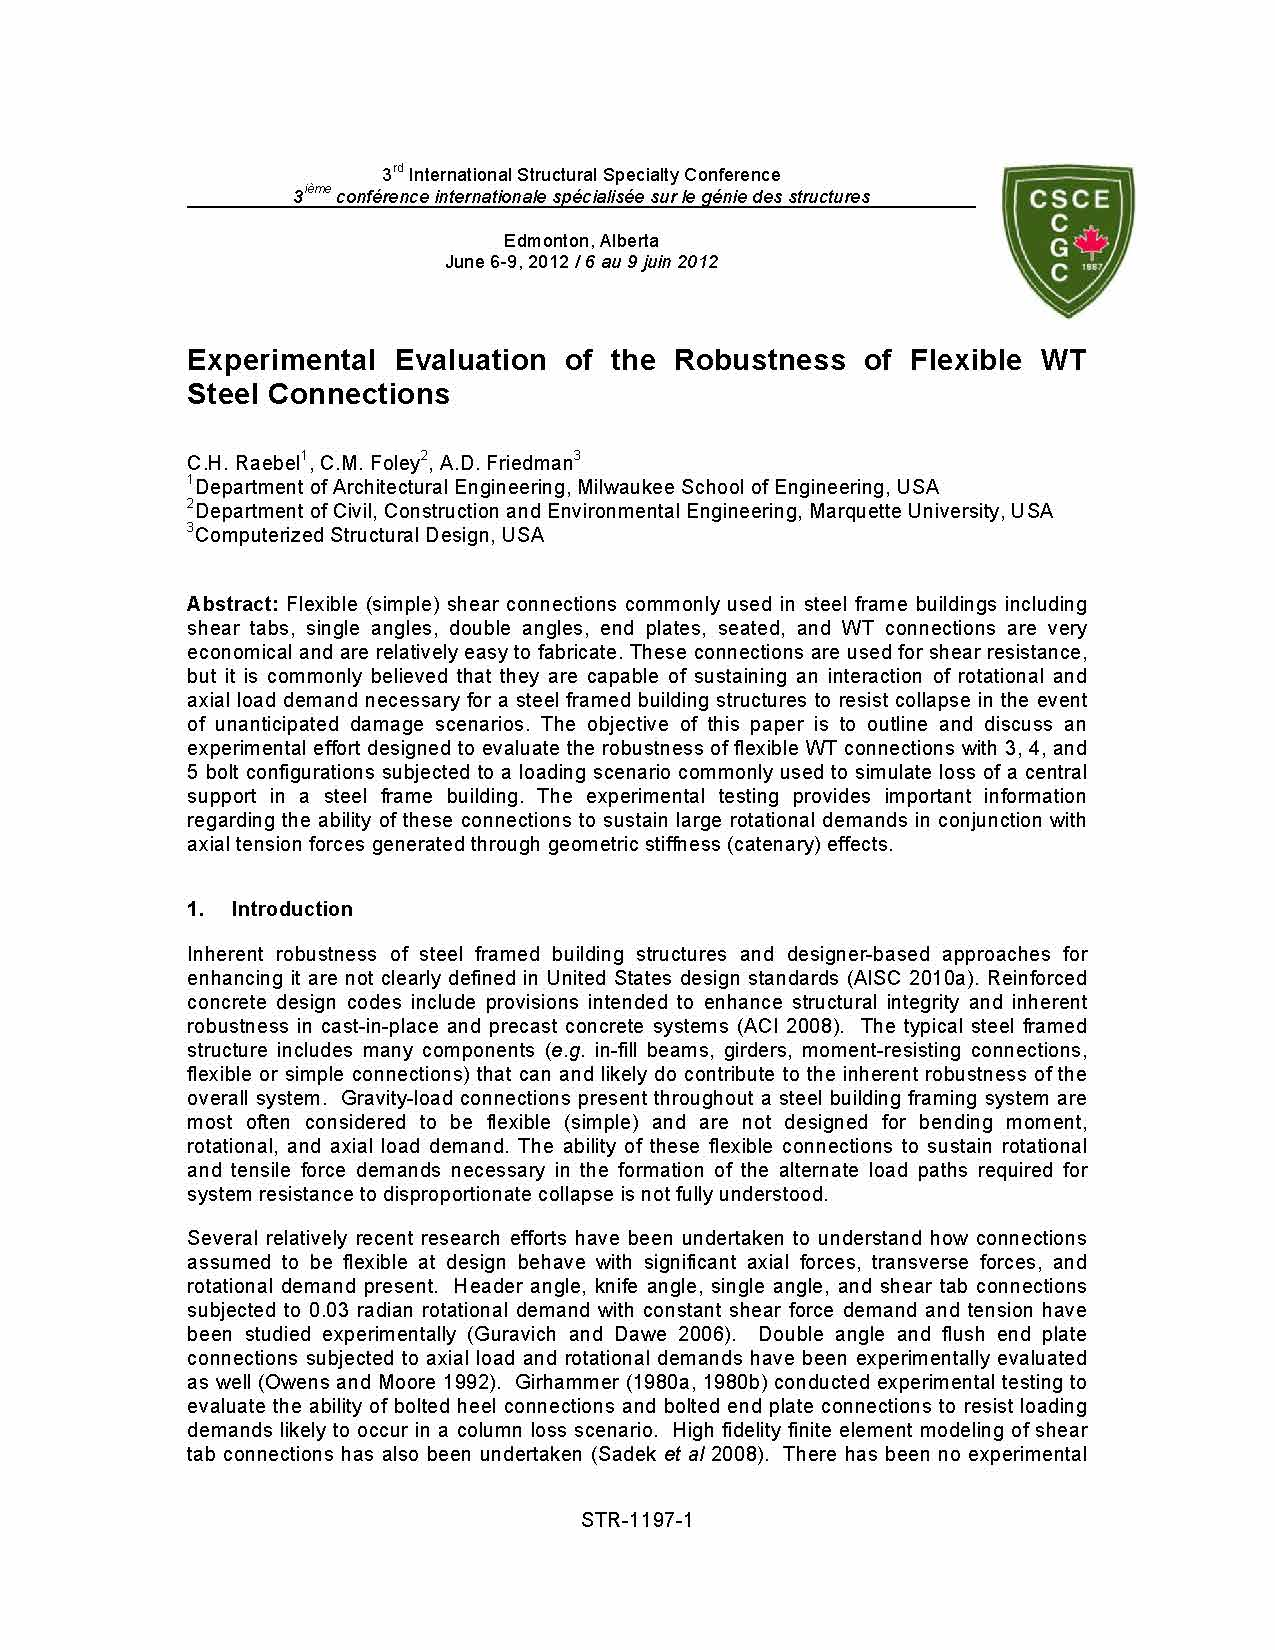 Experimental Evaluation of the Robustness of Flexible WT Steel Connections | CSD Structural Engineers